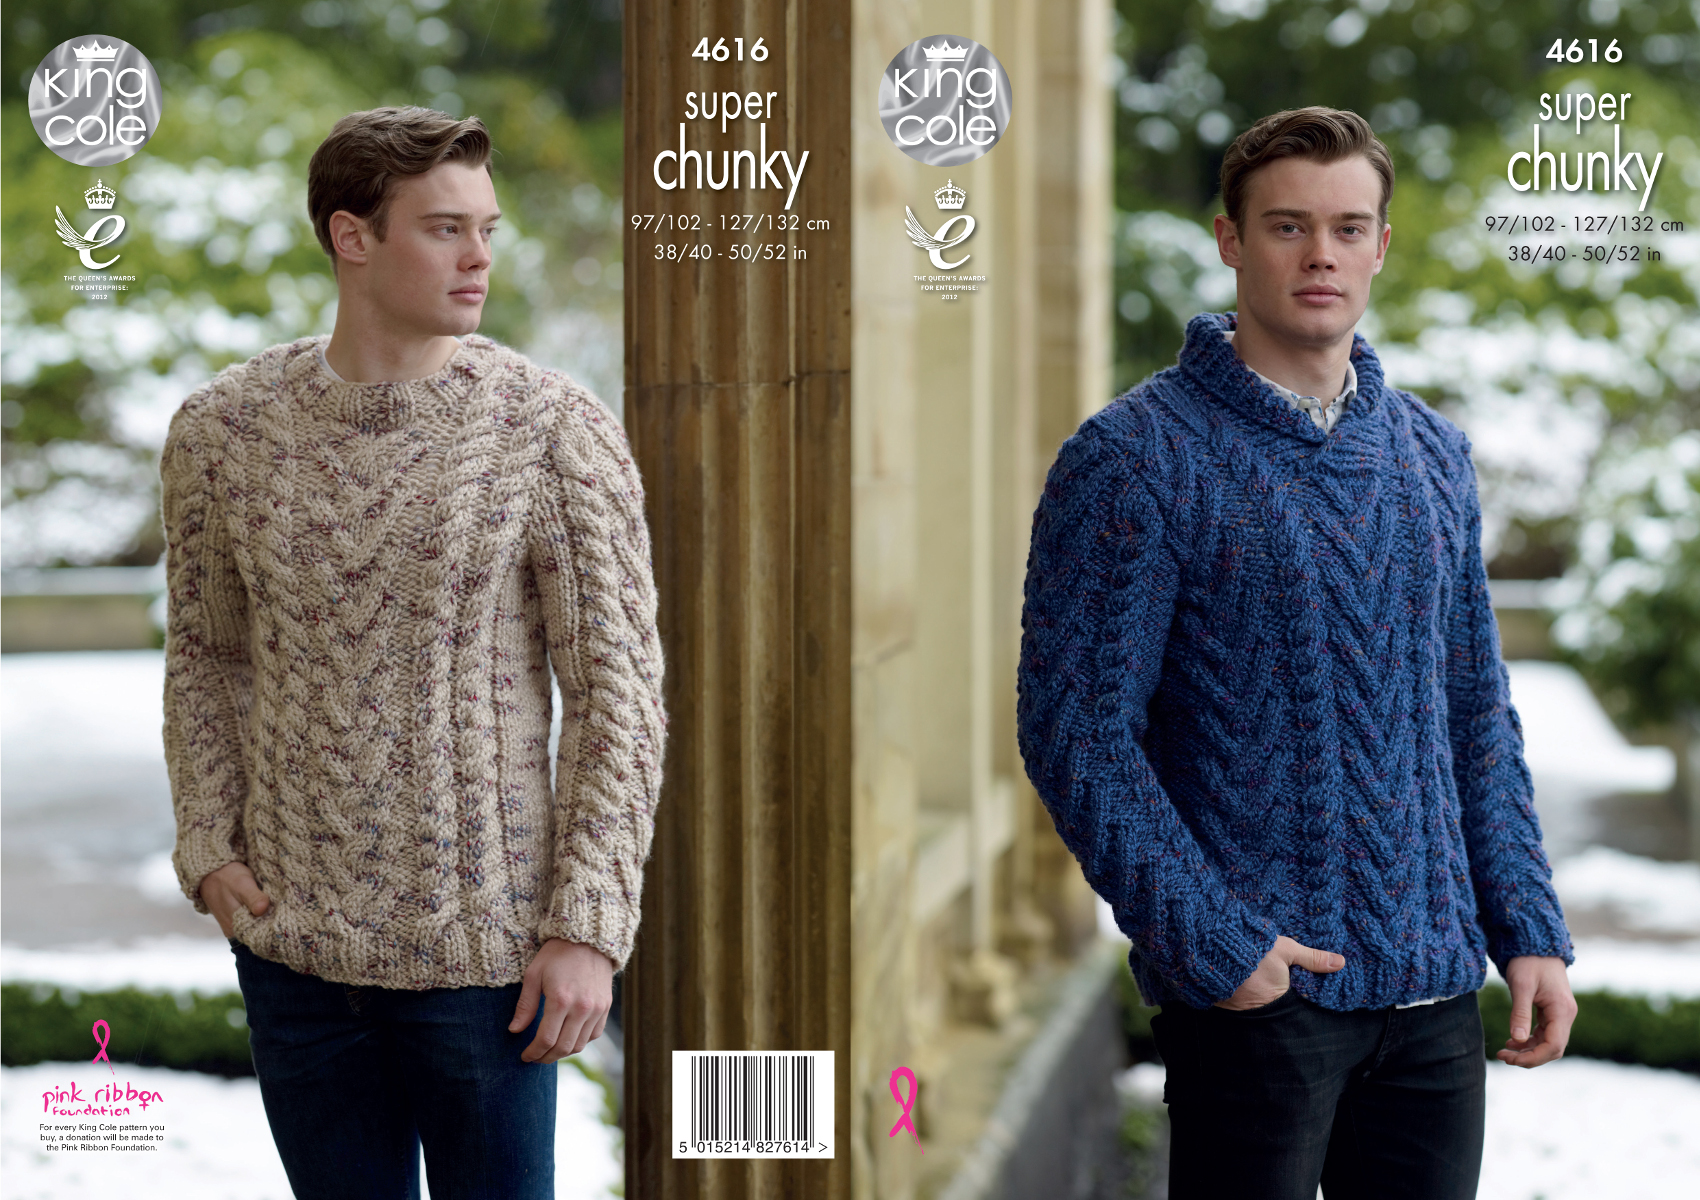 Mens super chunky knitting pattern king cole cabled long sleeve please look at images below for the chart showing measurements yarn and materials requirement to make this garment bankloansurffo Gallery